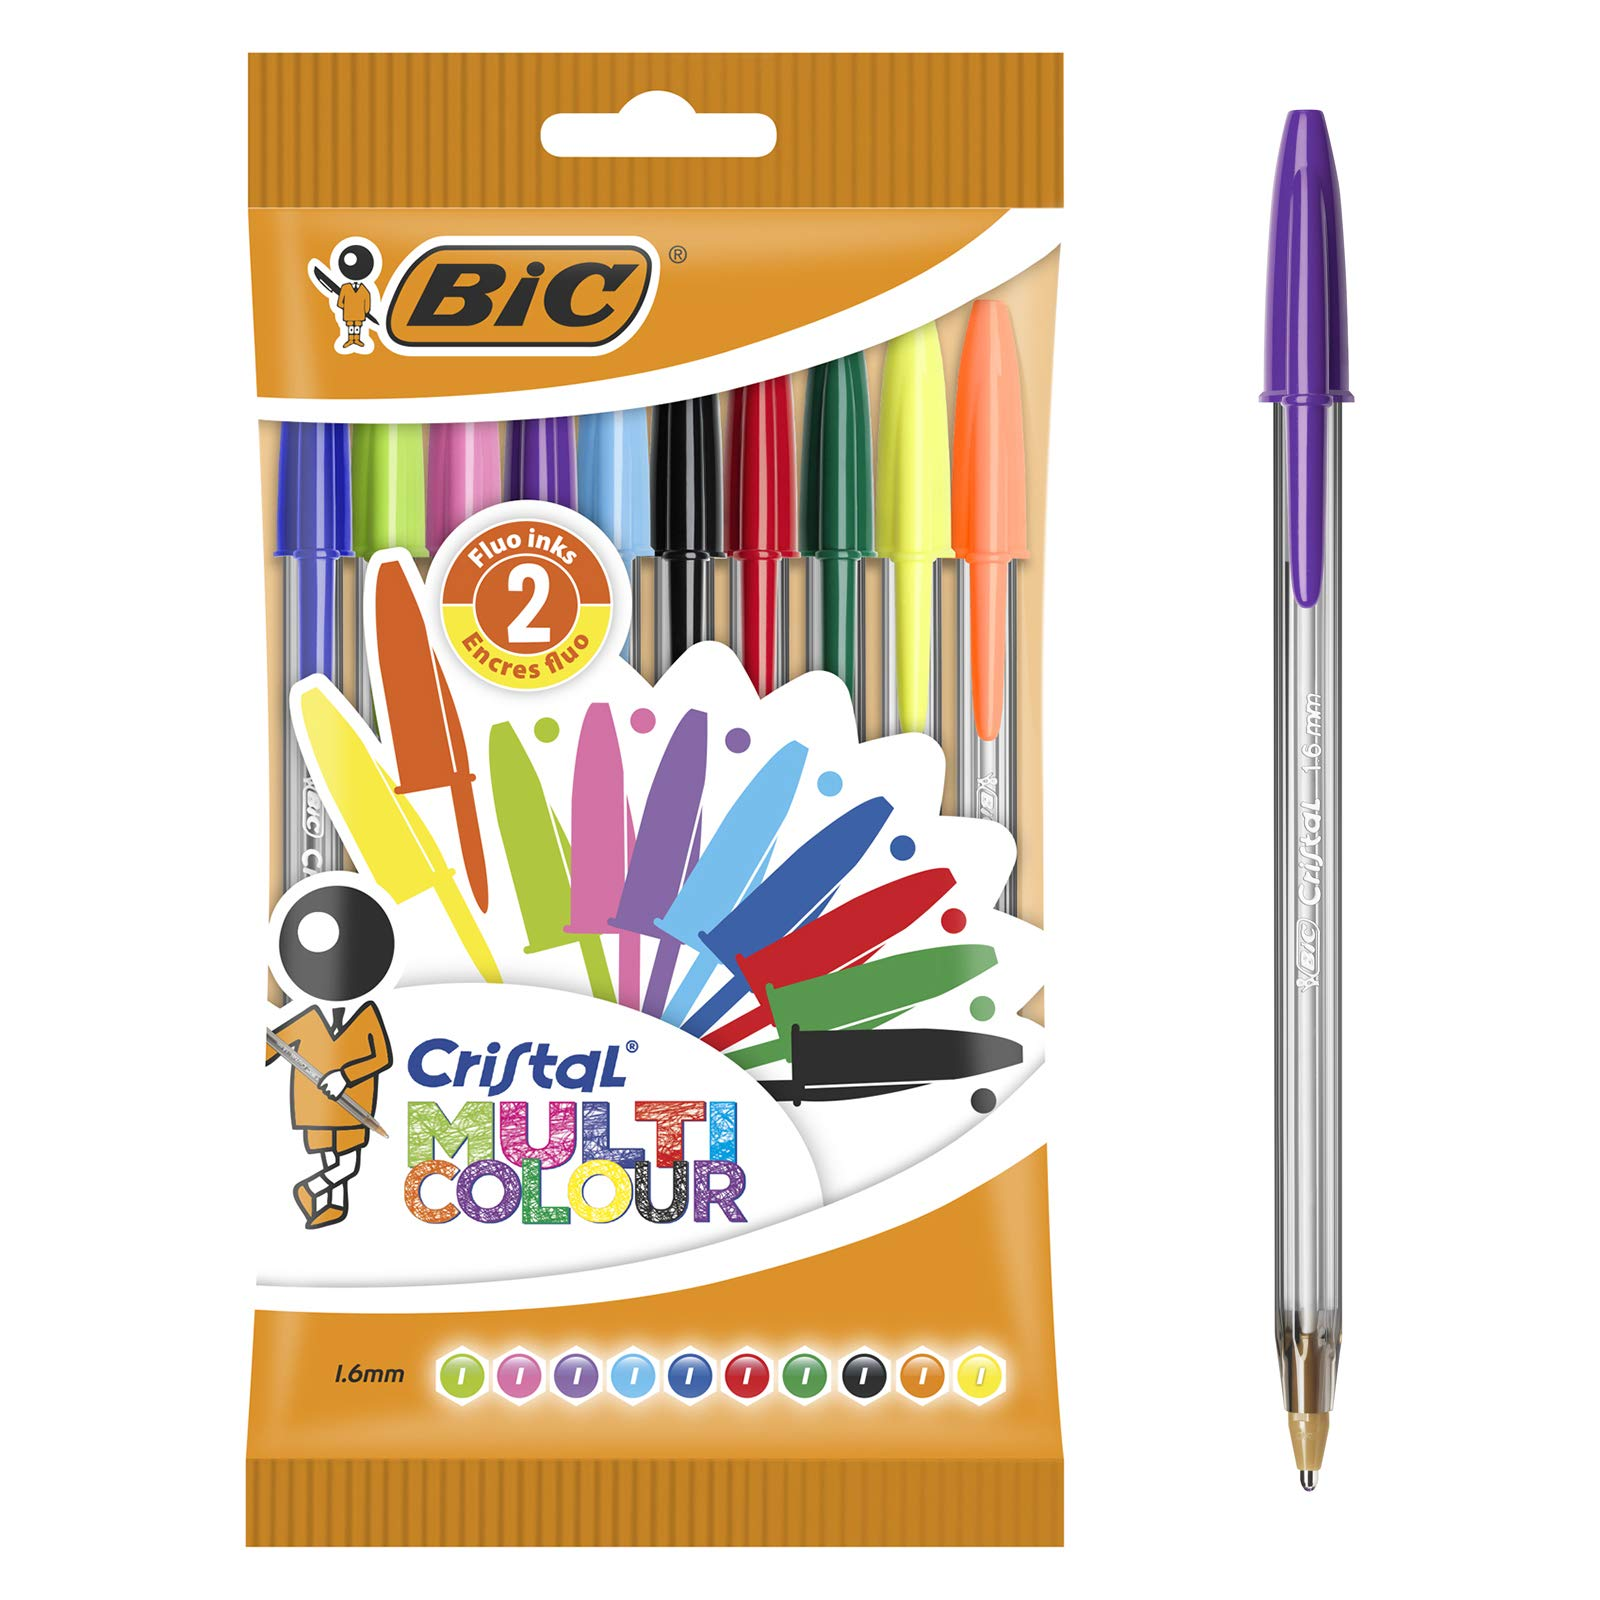 BIC Cristal Multicolour bolígrafos Punta Ancha (1,6 mm) – colores ...